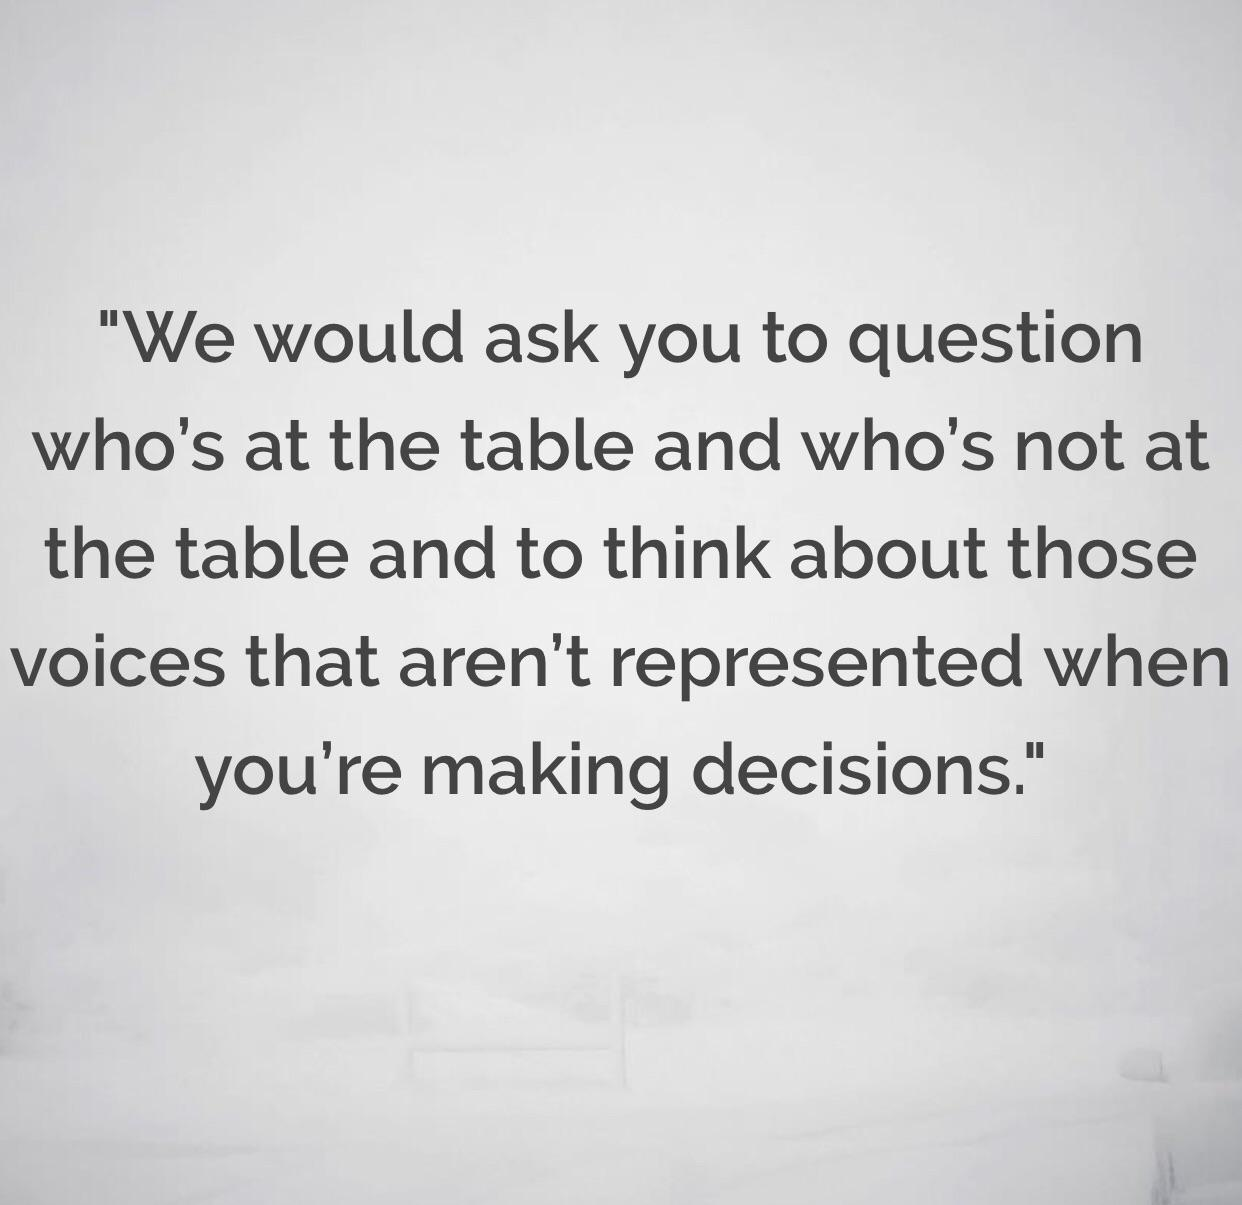 [Image] The decisions you do for the unseen people you represent will certainly get you motivated